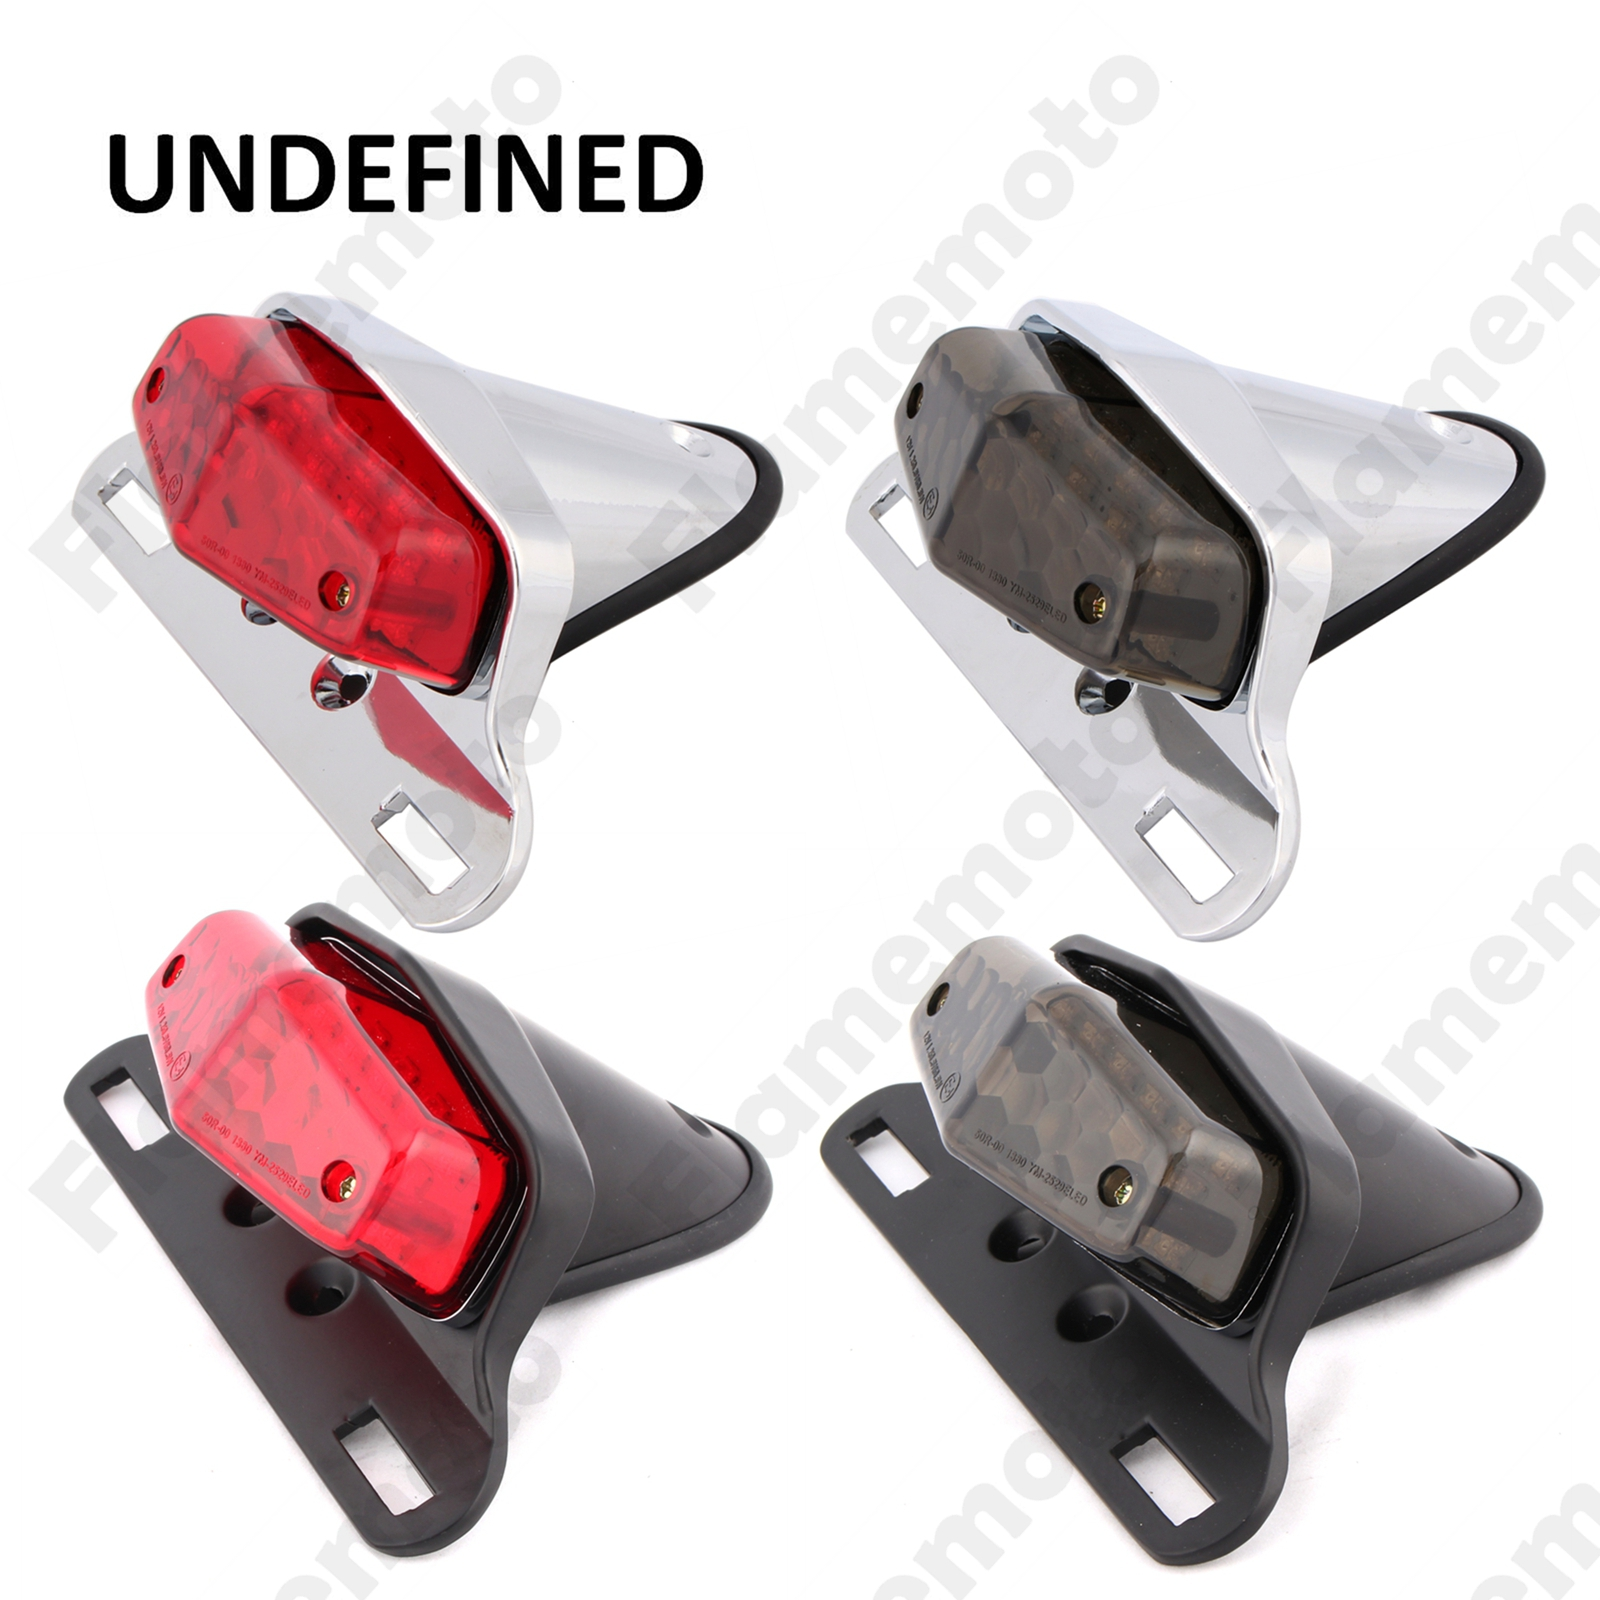 Motorcycle Parts British Lucas Style LED Rear Tail Brake Light License Plate Mount For Cafe Racer Bobber Cruiser UNDEFINED